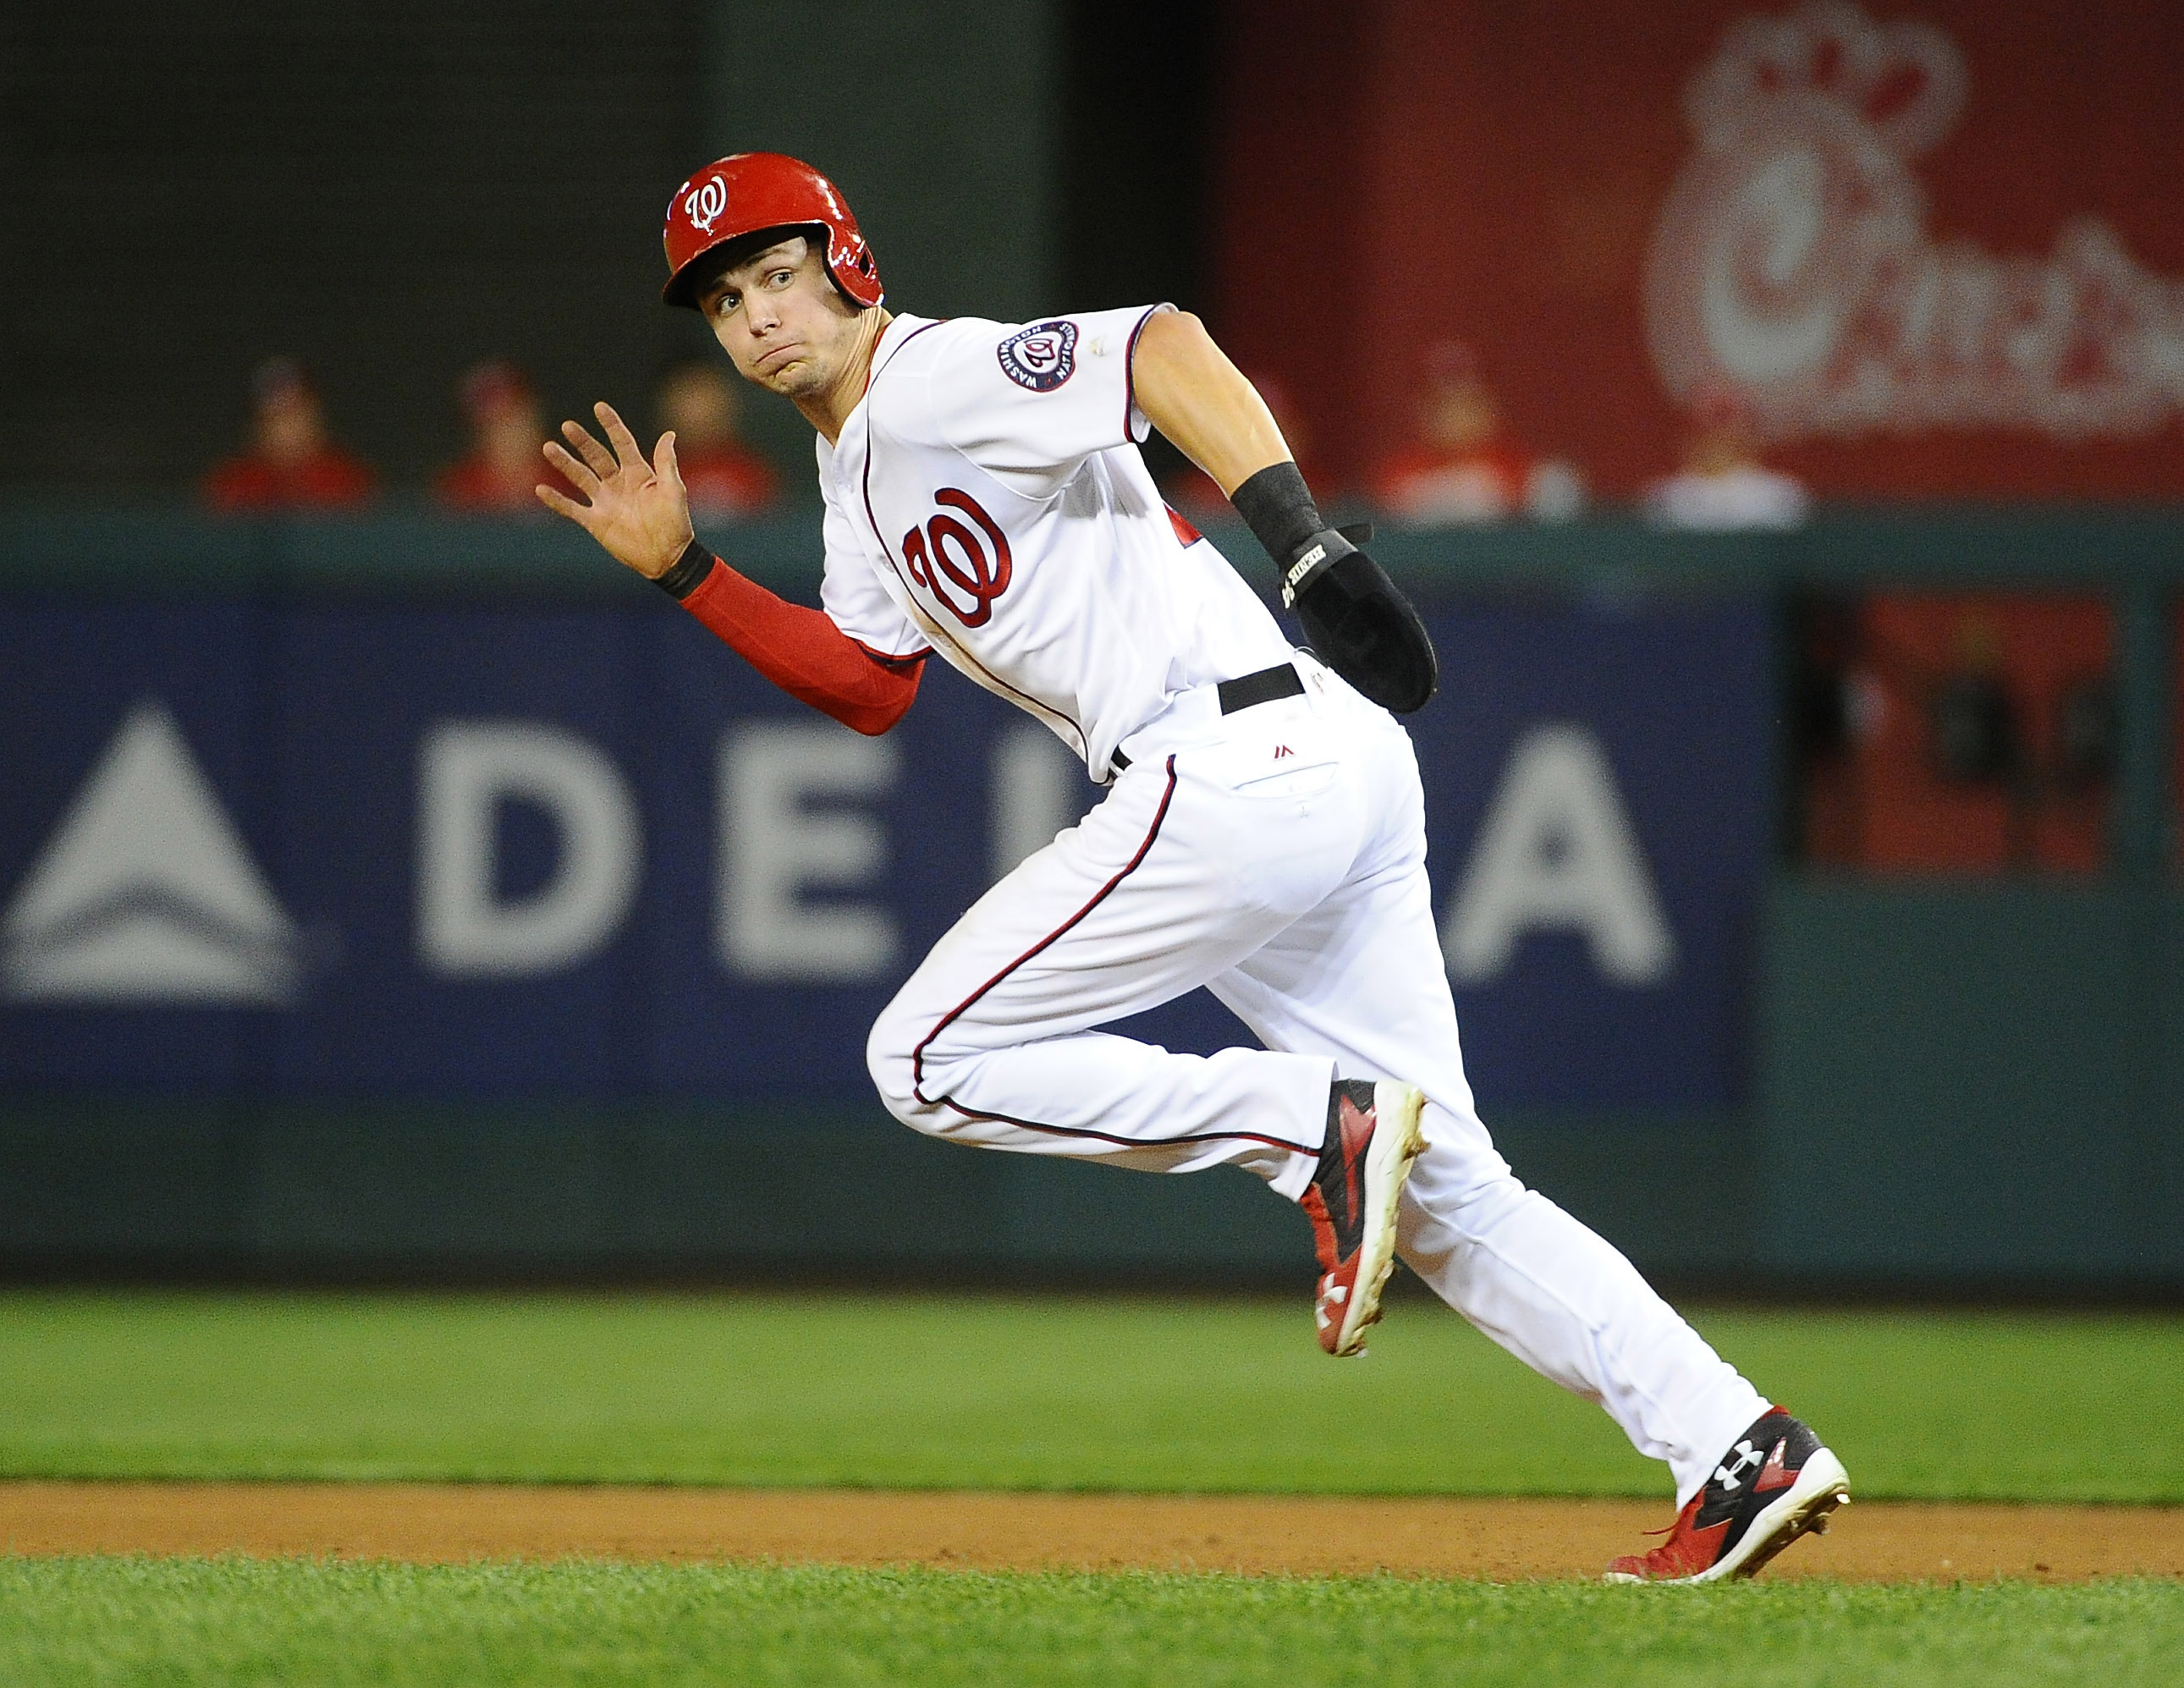 9568430-mlb-arizona-diamondbacks-at-washington-nationals